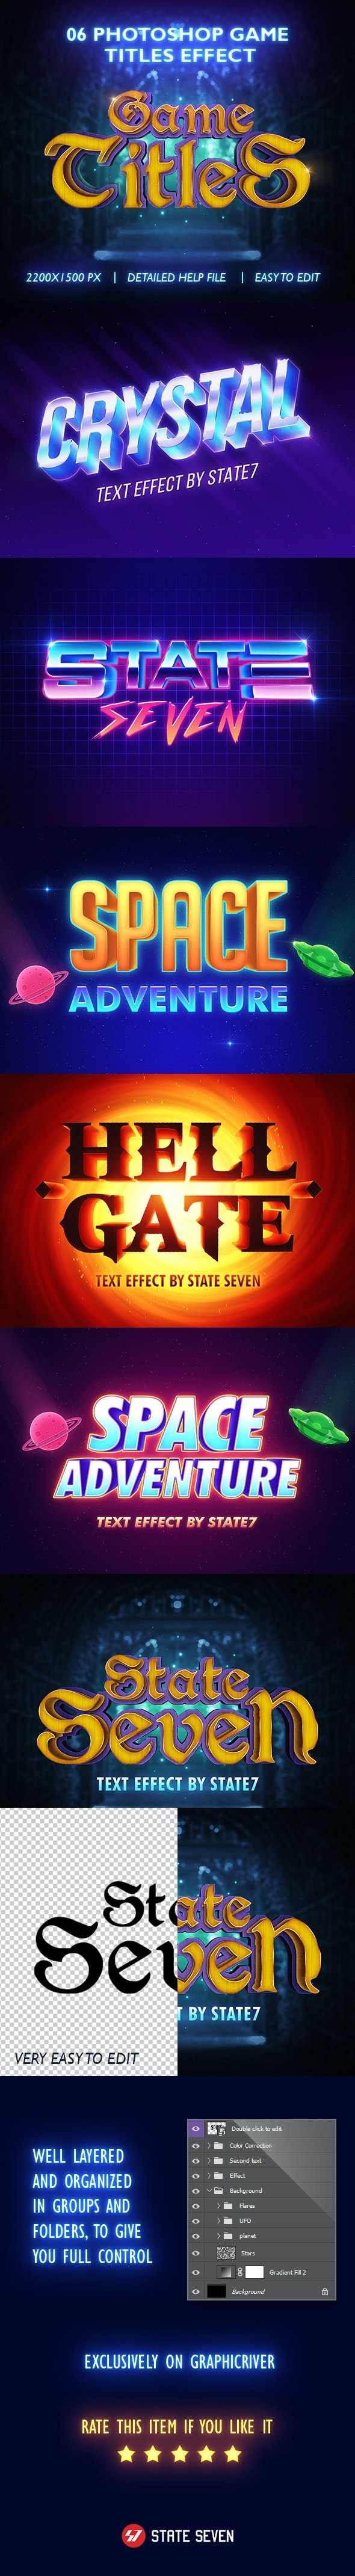 Games Titles Photoshop Text Effect - Text Effects Styles